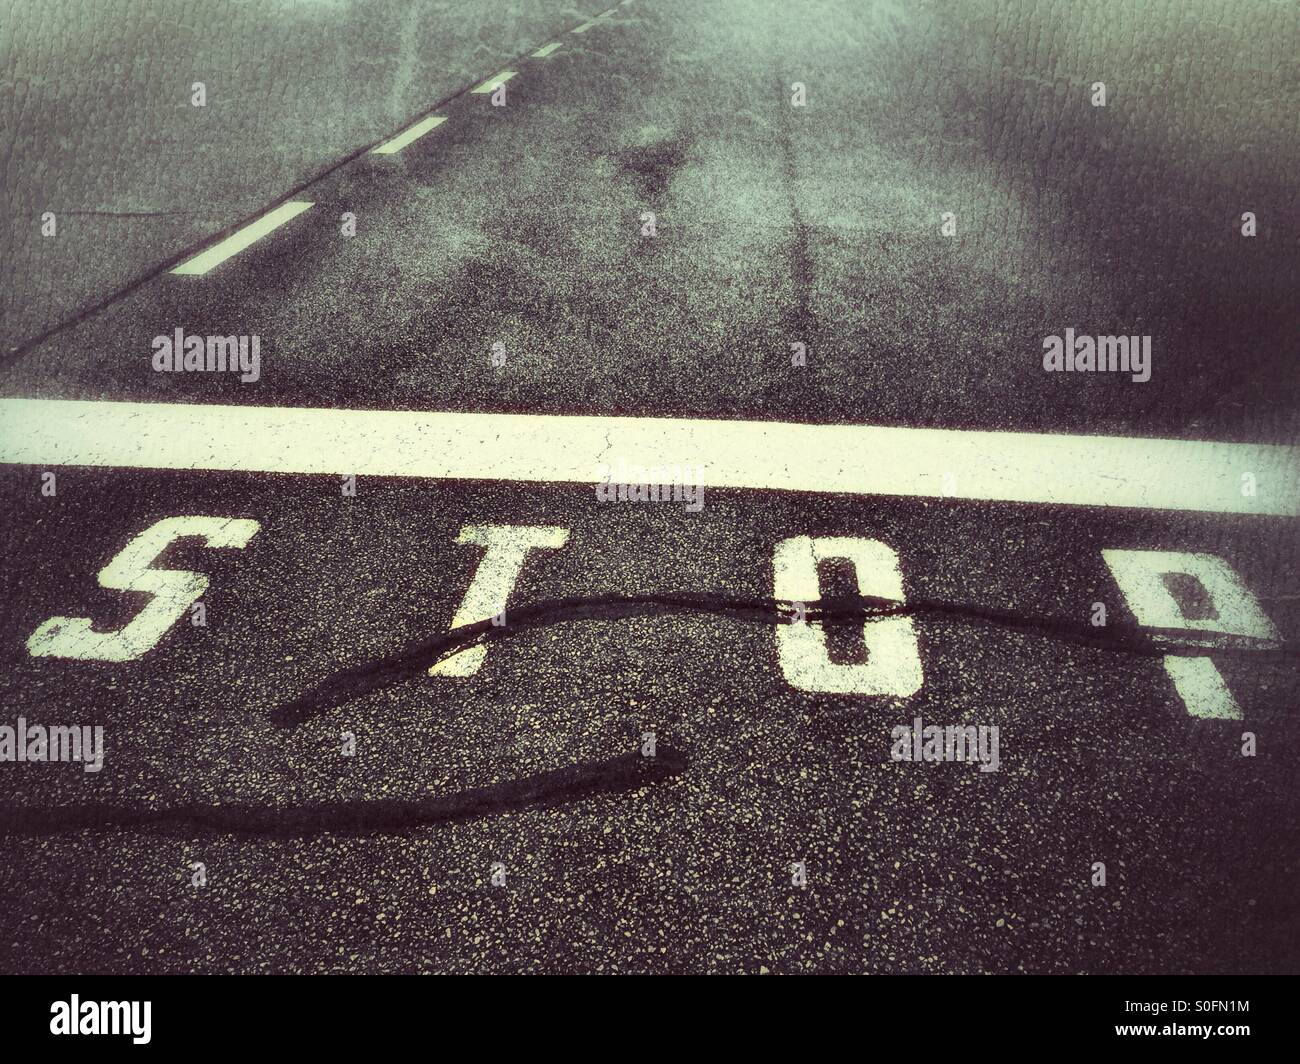 Stop - Stock Image